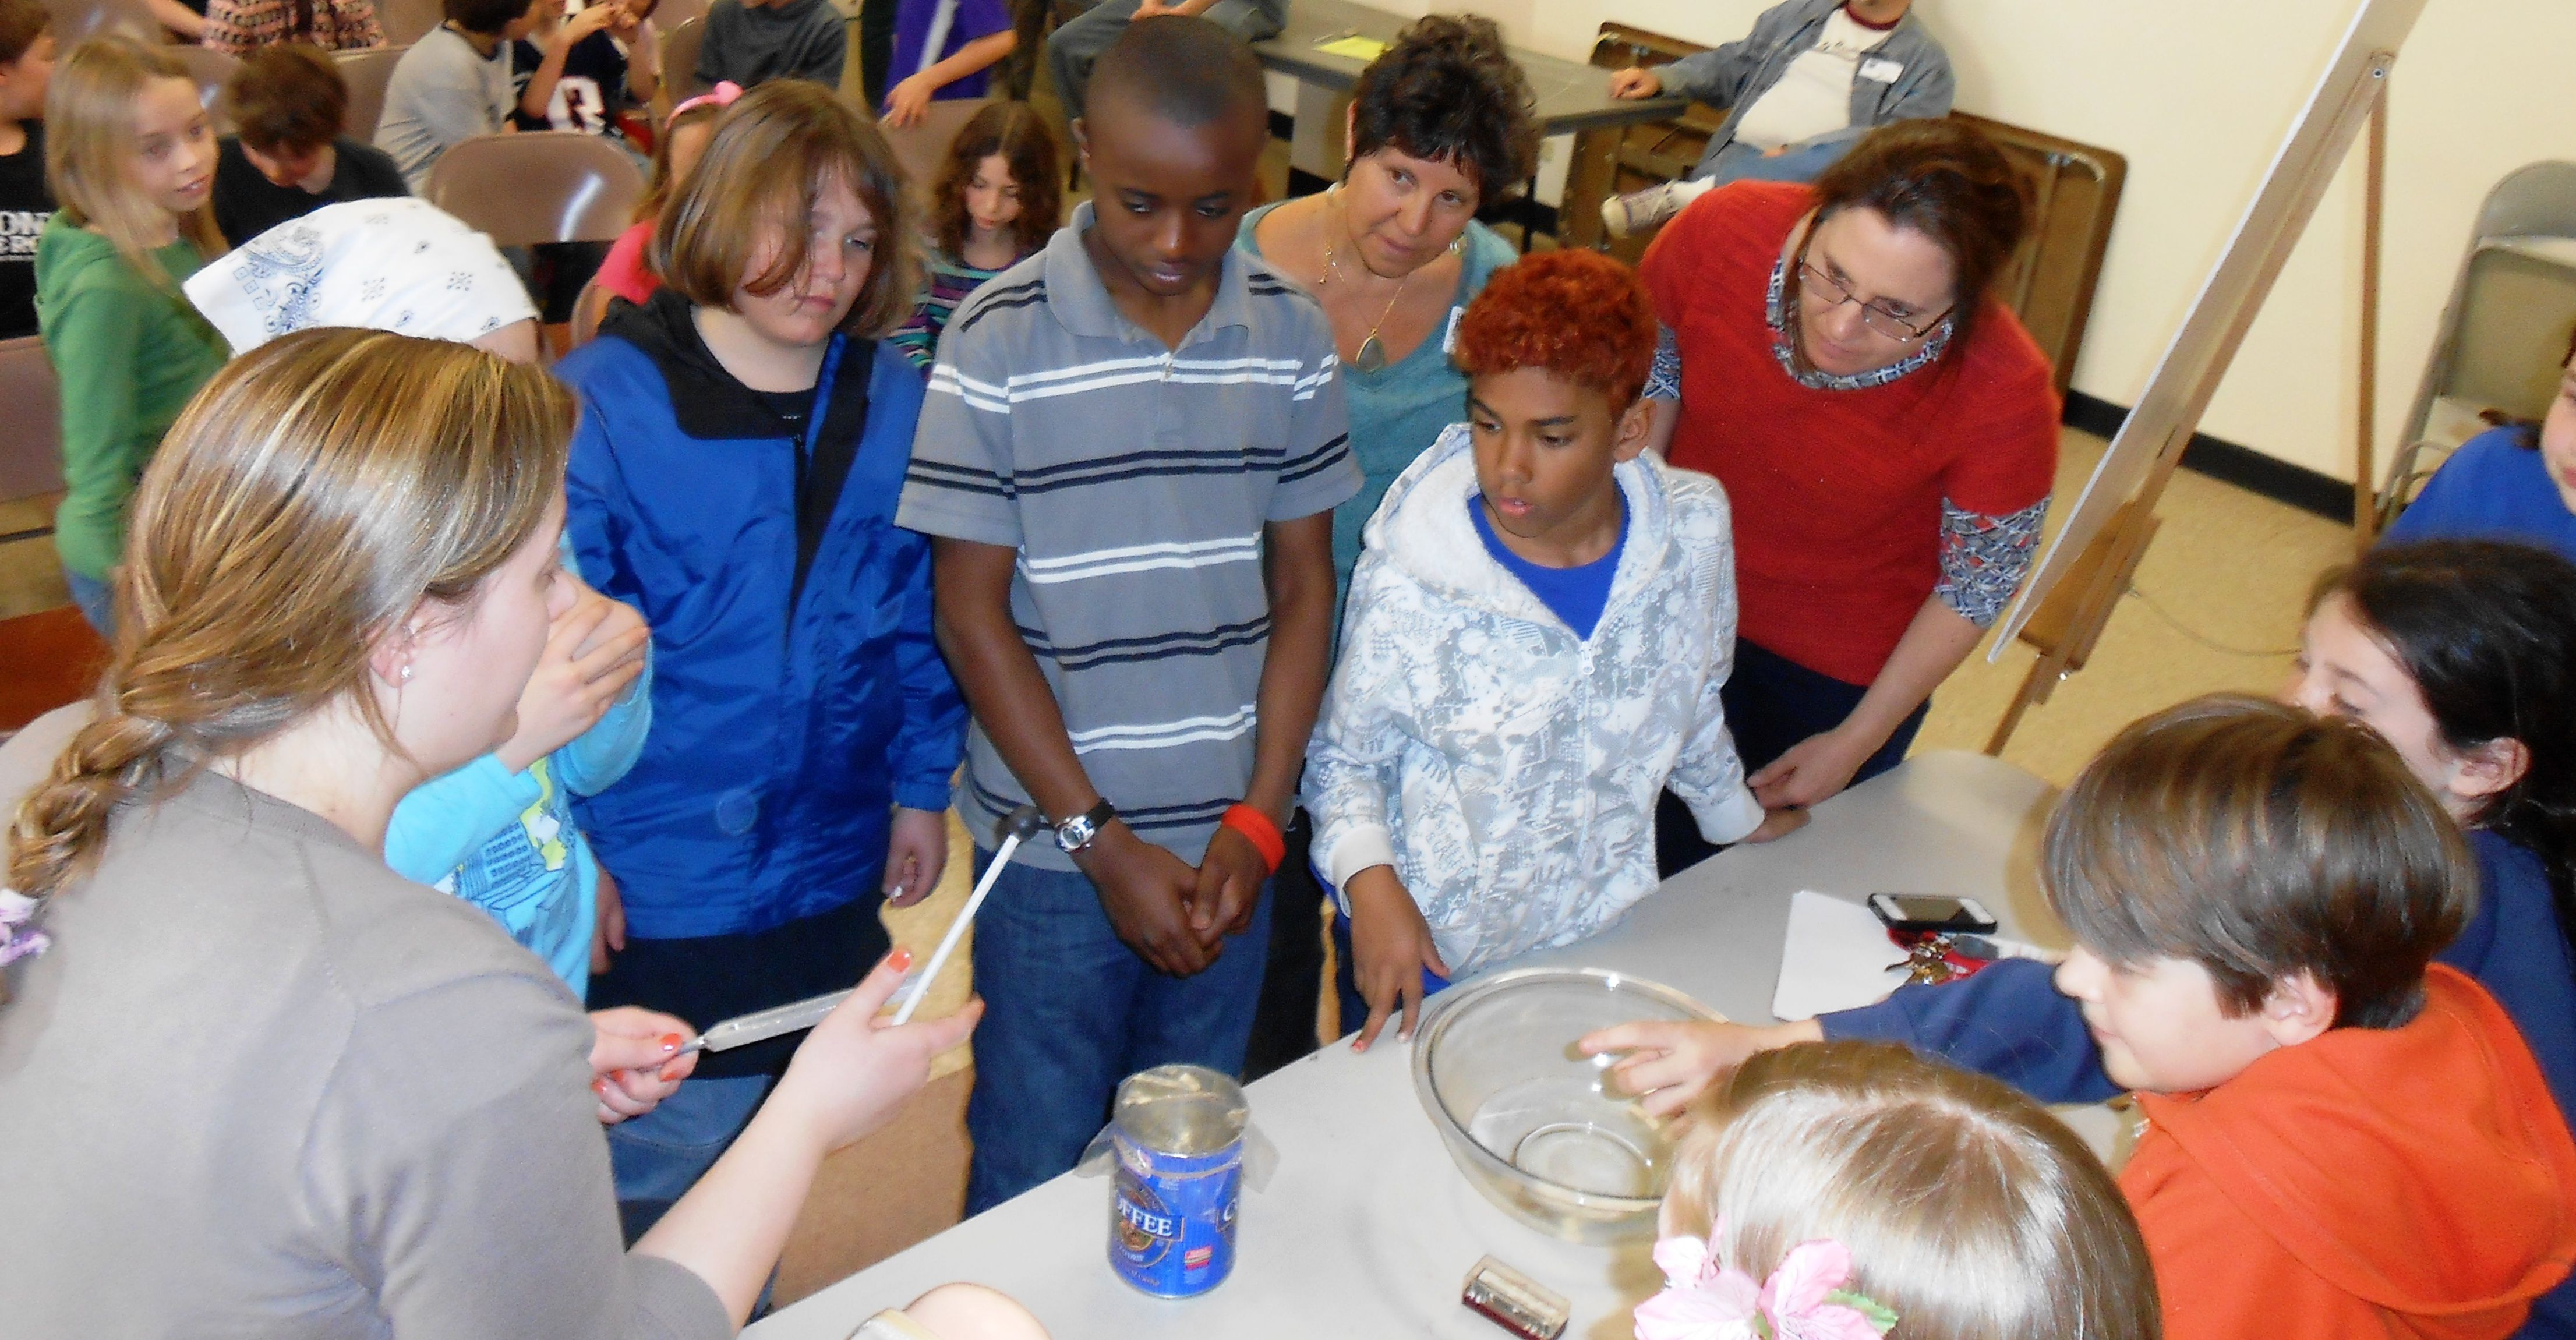 Students experiment with pitch and resonance during a Light & Sound field trip program.